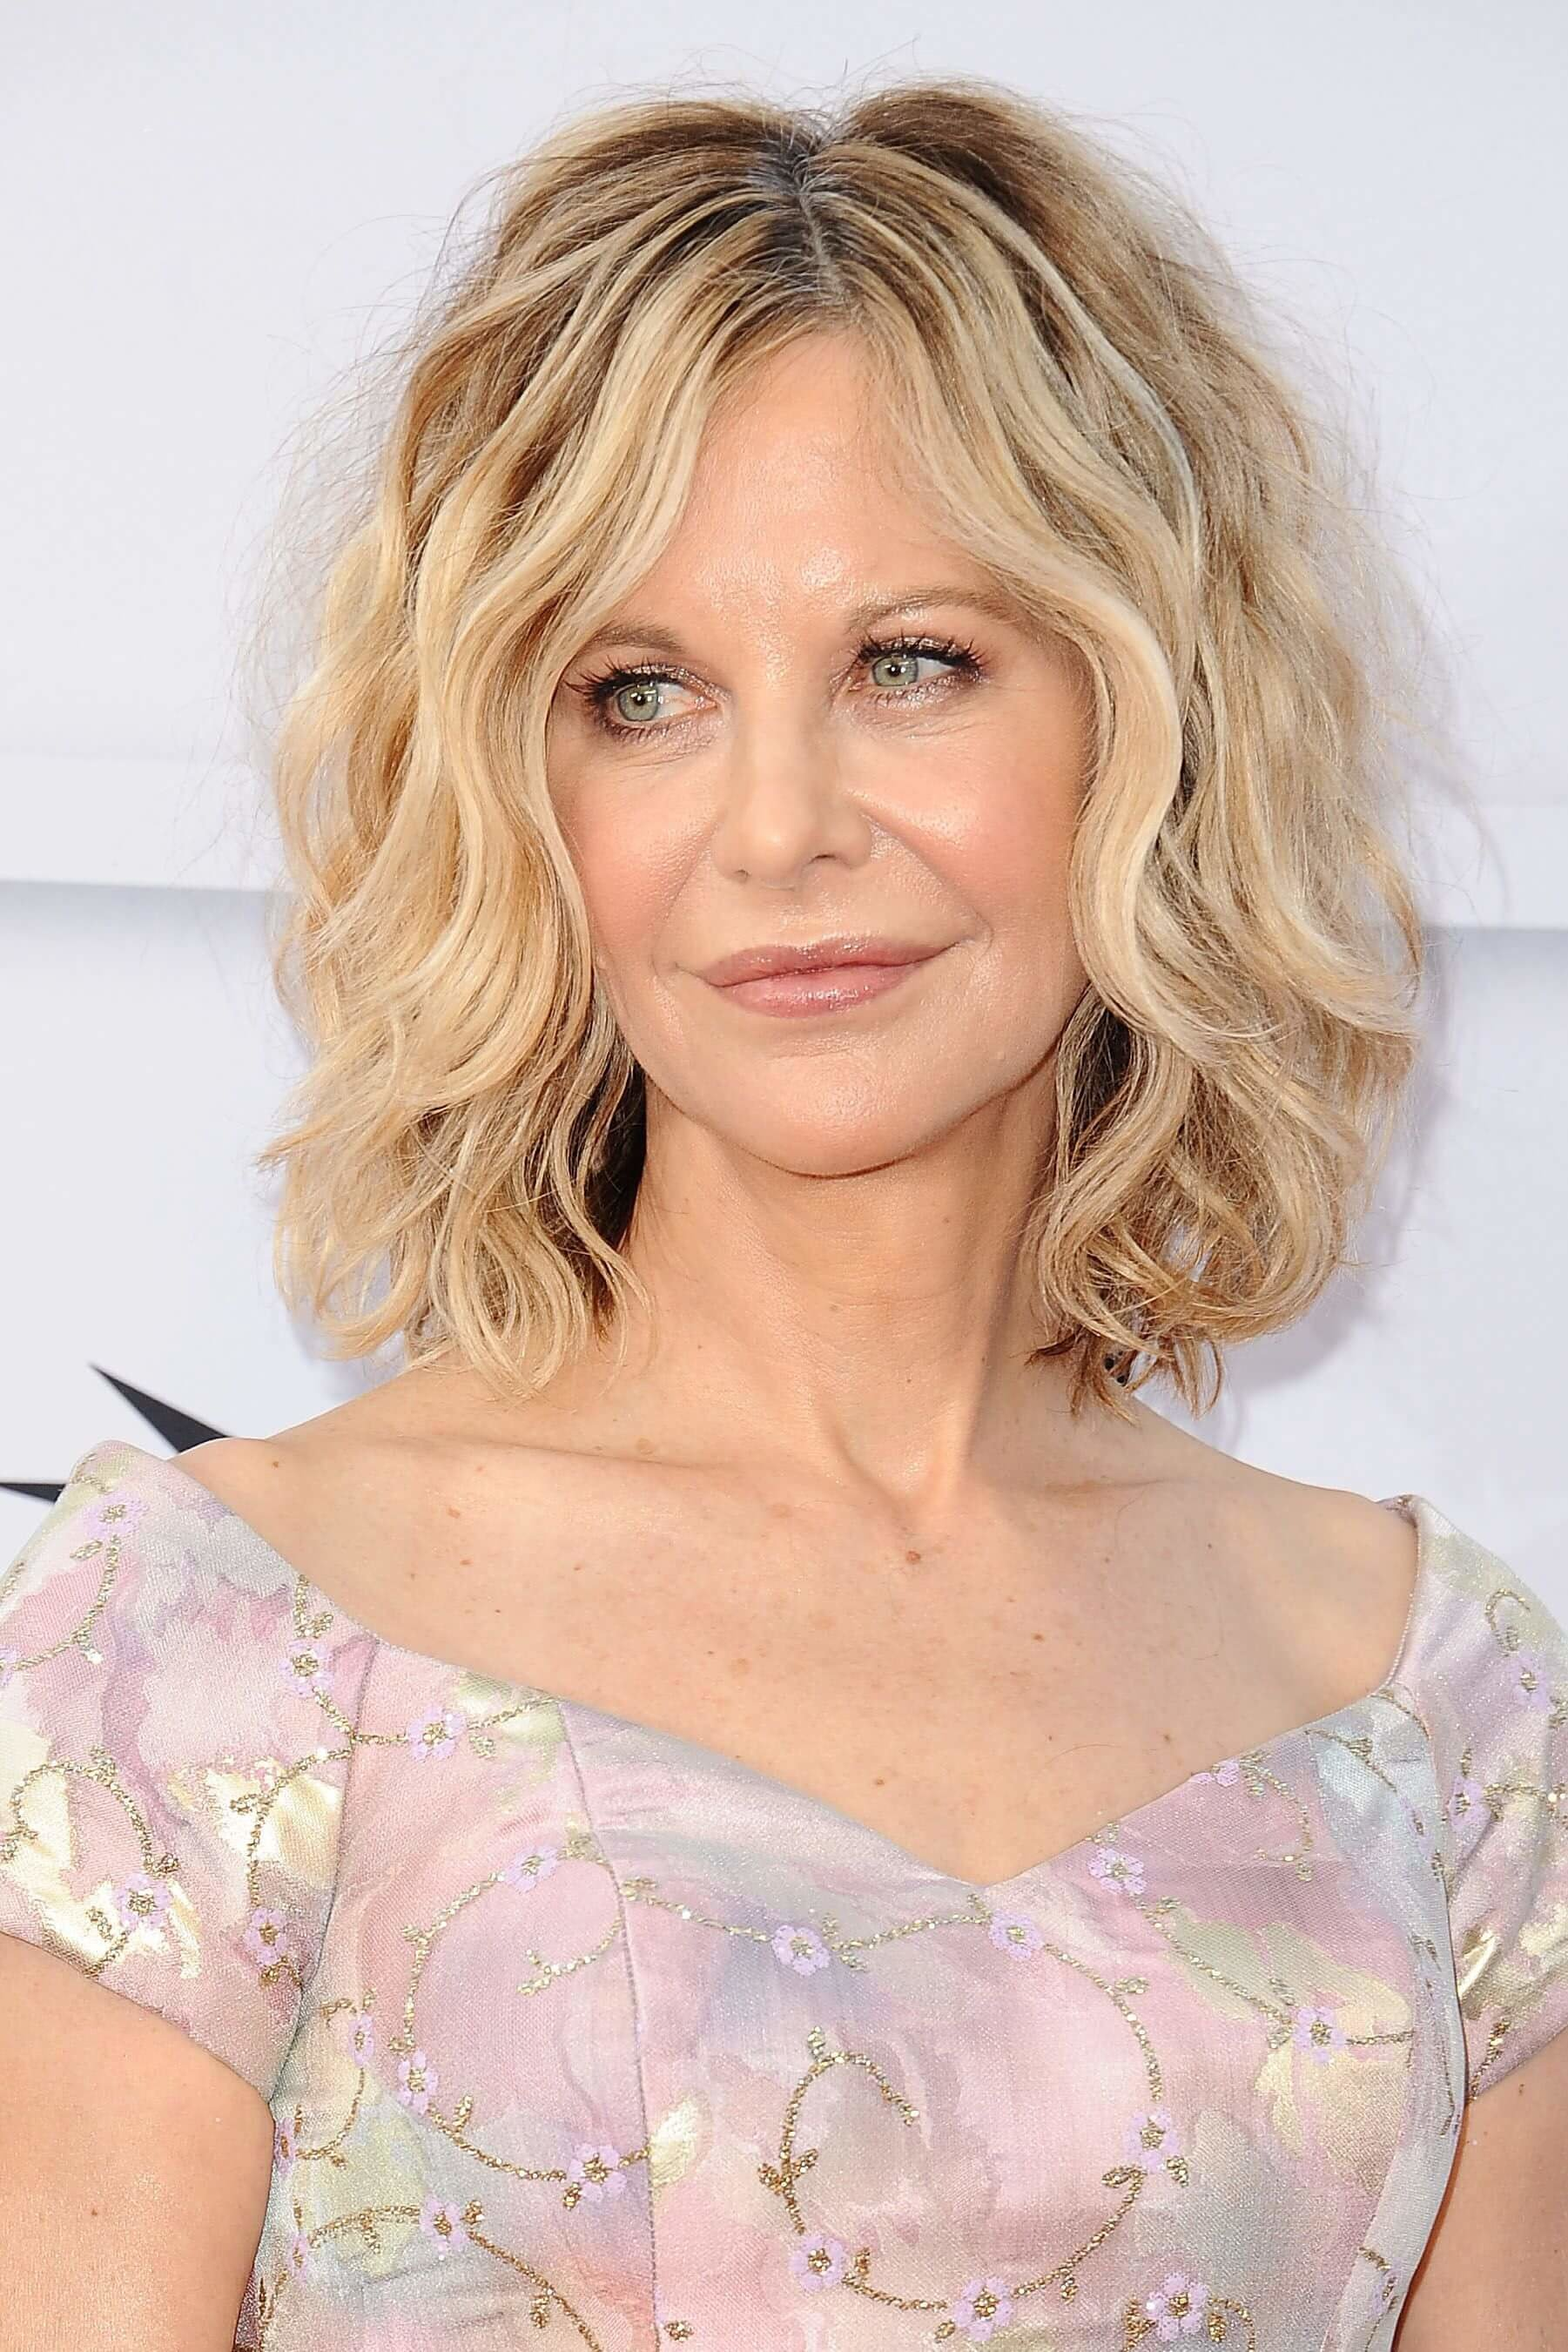 The Best 50 Hairstyles For Women Over 50 With Bangs Pictures